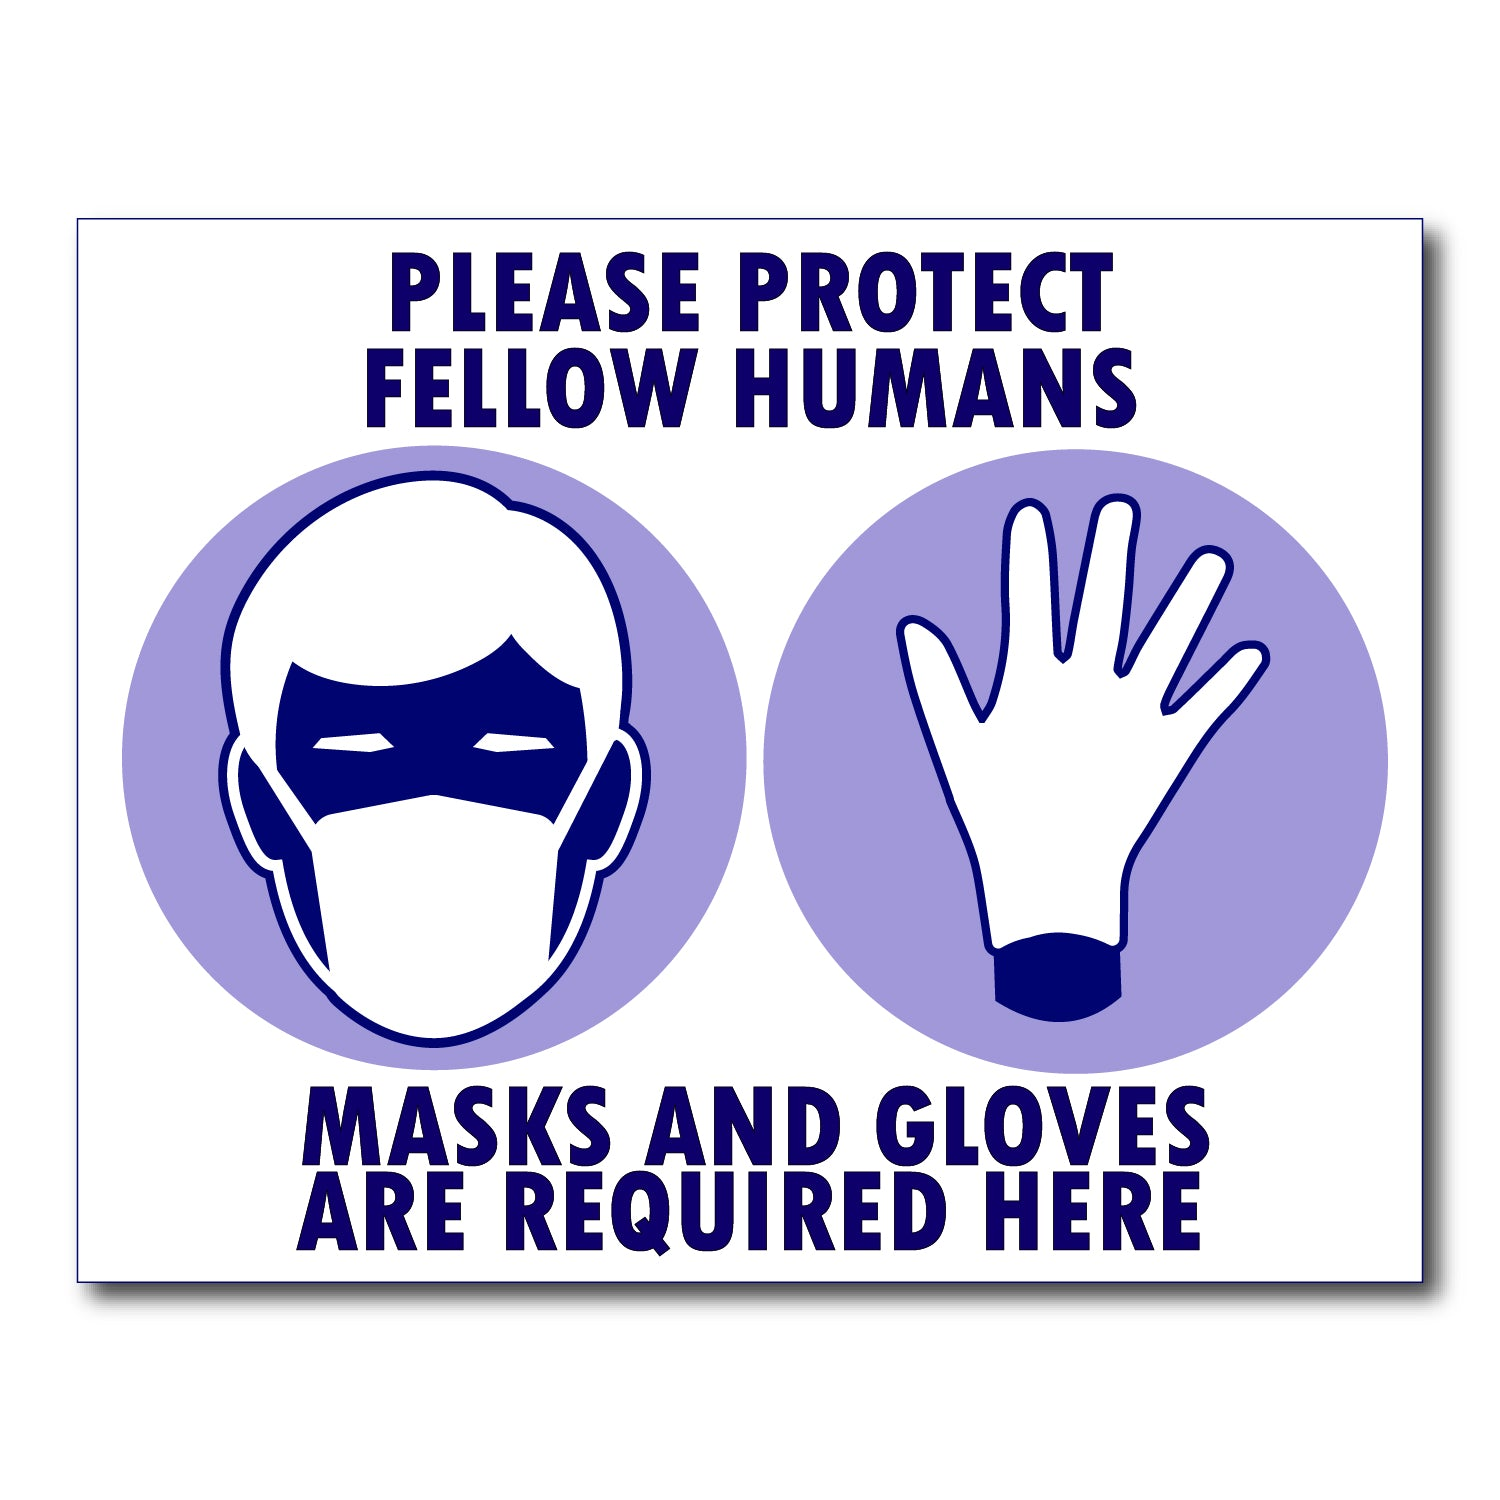 protect fellow humans mask and gloves require dcovid-19 mask and glove poster